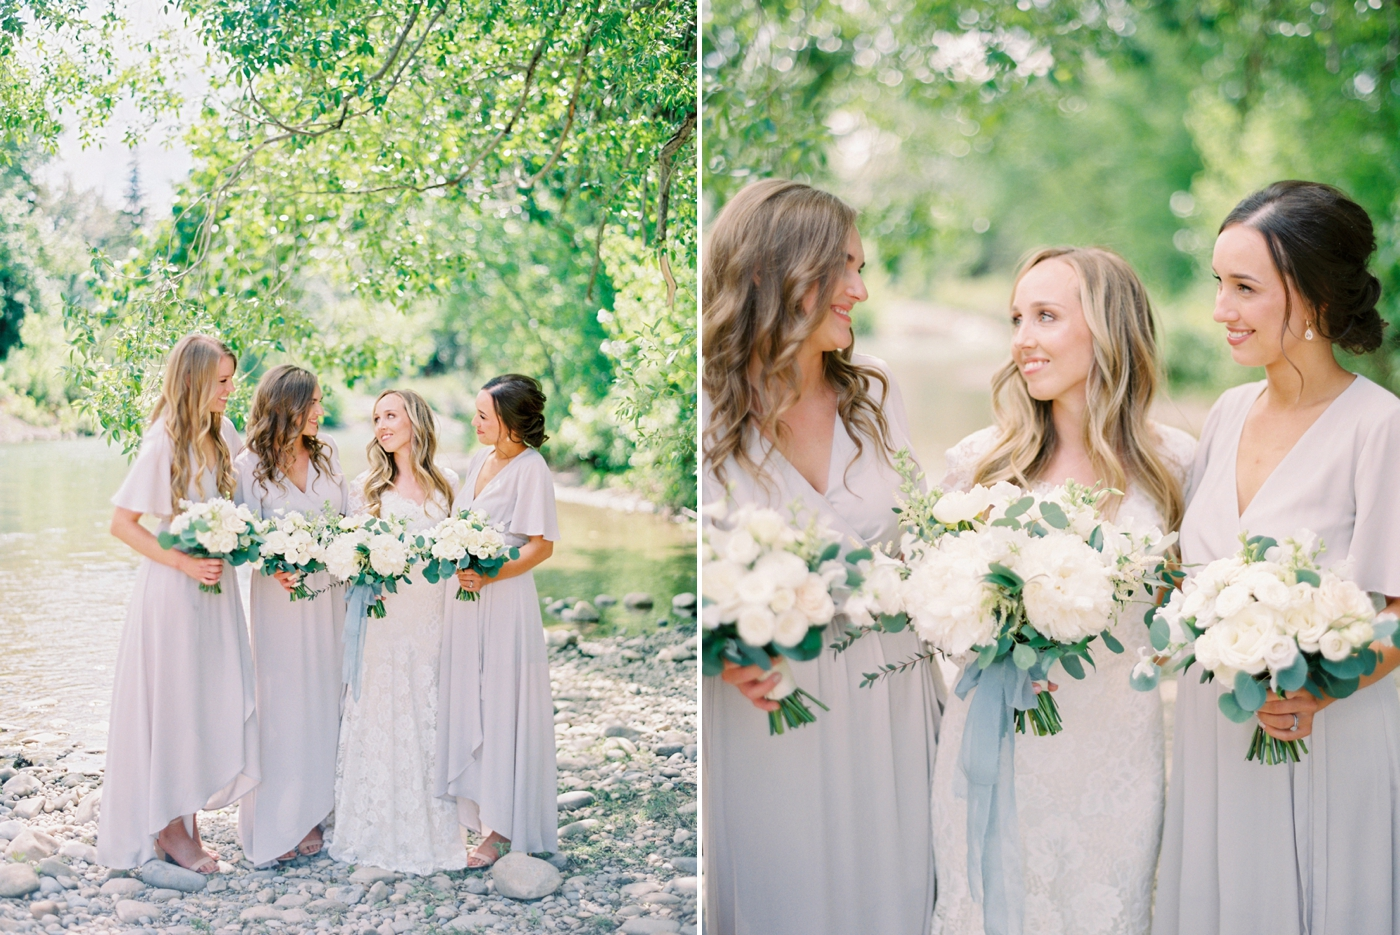 Calgary wedding photographers | The Gathered Farm Wedding | Justine milton fine art film photographer | bride and bridesmaids portraits nude dresses white peony bouquets